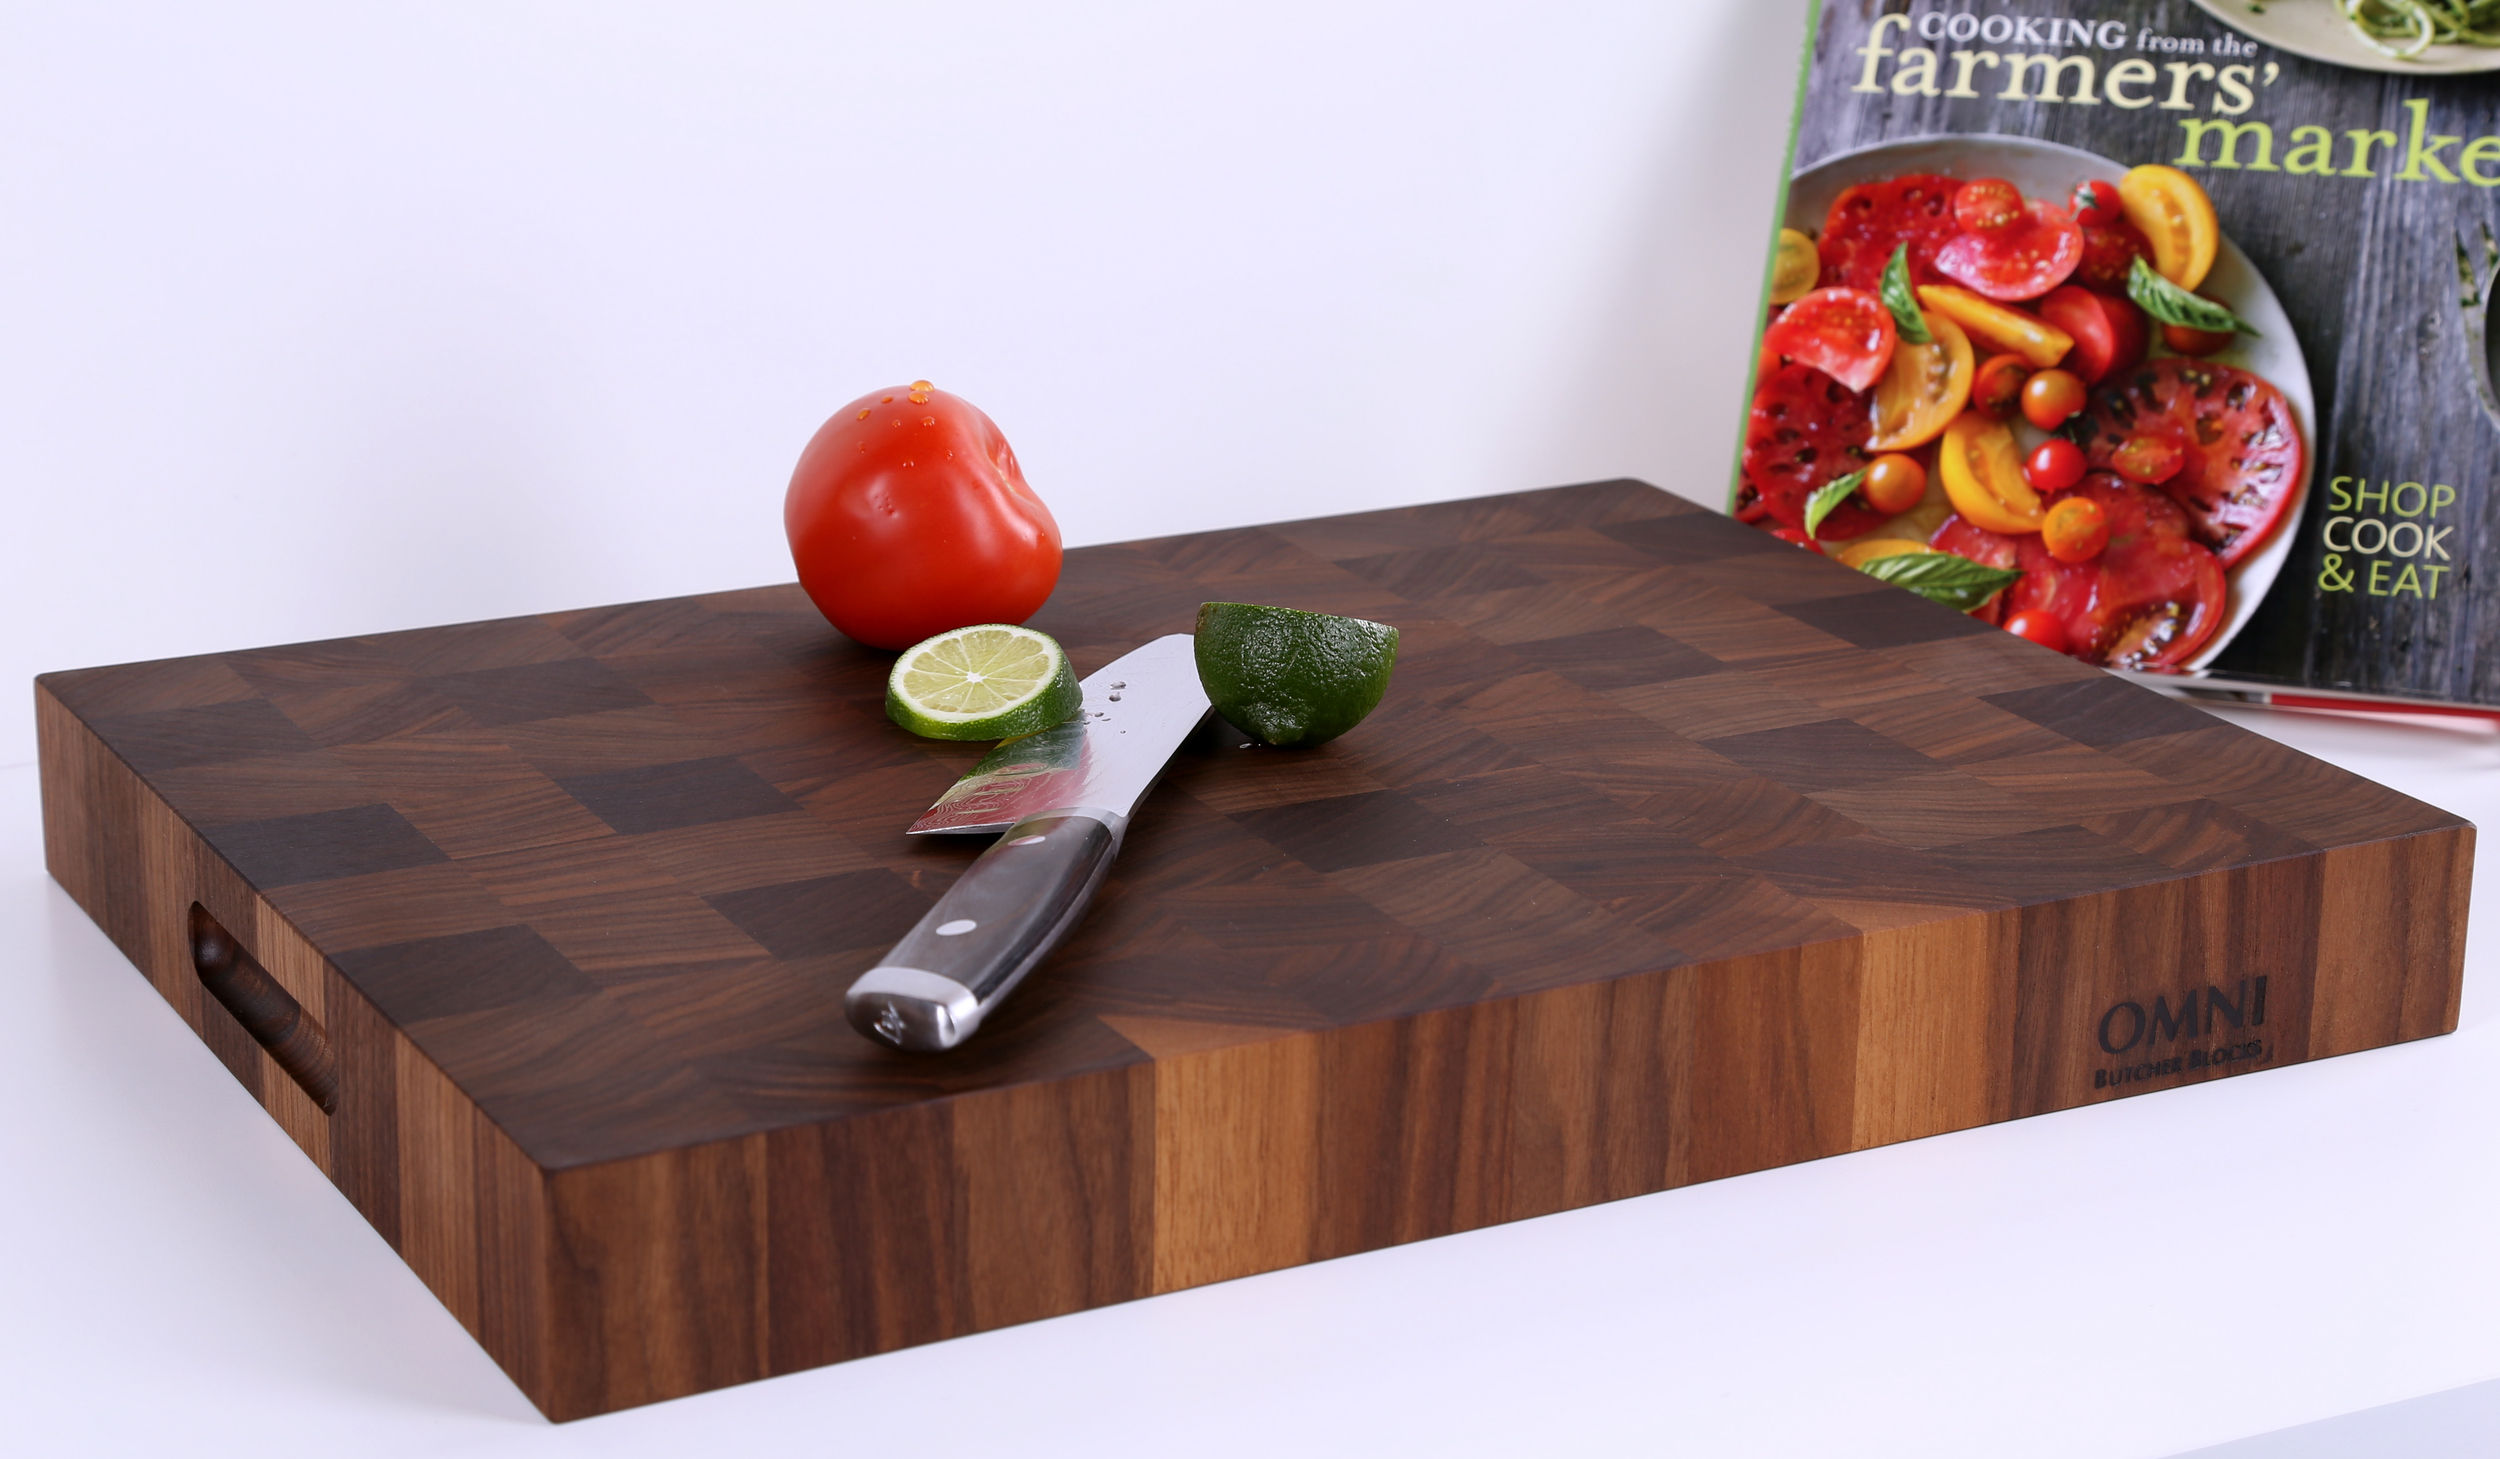 """Our best selling End Grain! Carefully handcrafted from specially selected, kiln-dried Black Walnut. This classic design is beautiful and durable and perfect for the home chef.  Approximate measurements are 18"""" x 14""""x 2"""". $228.00 plus applicable taxes and shipping."""